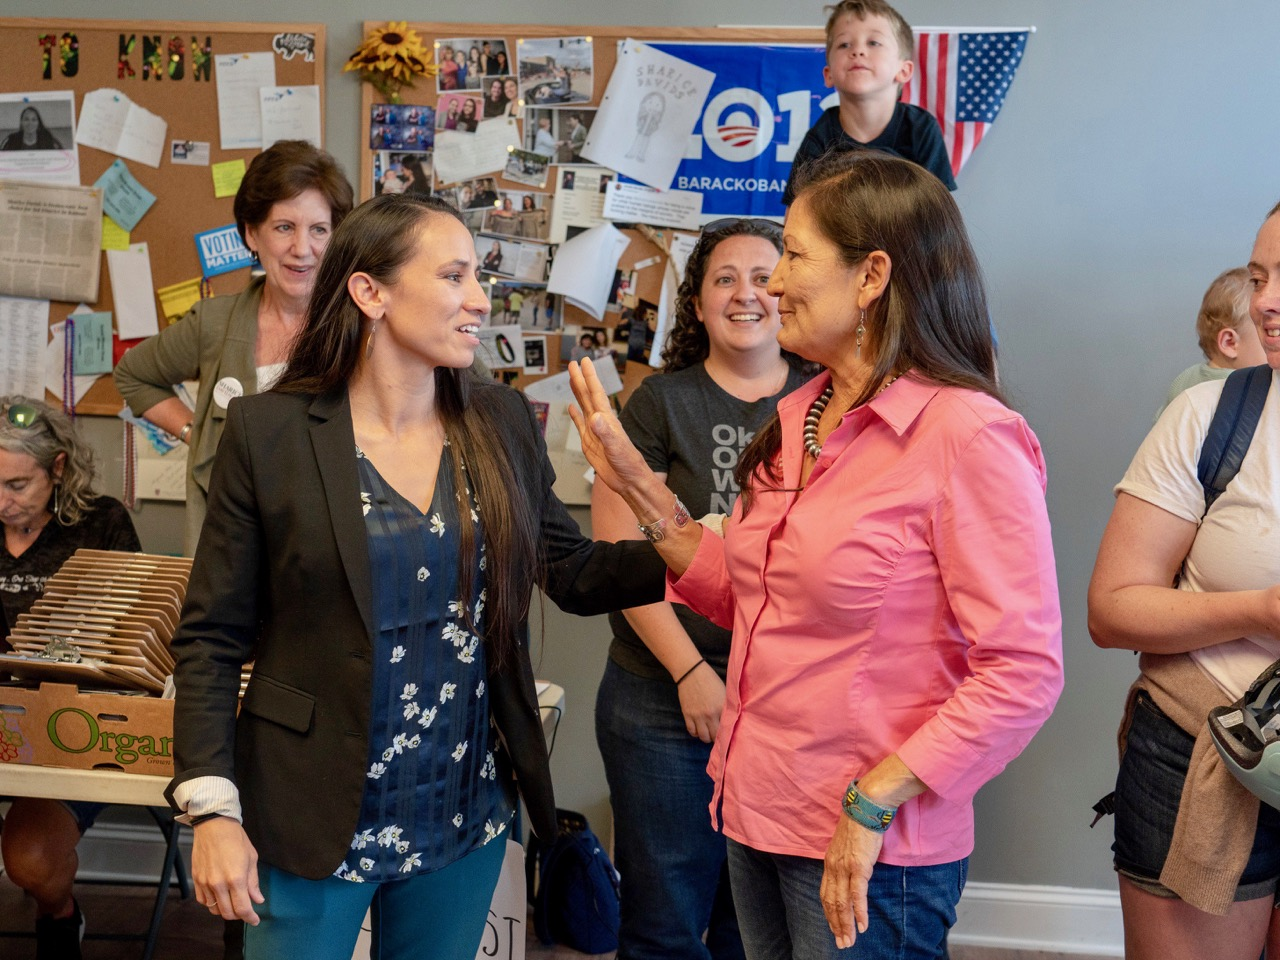 Native candidates for Congress see good news in final campaign stretch